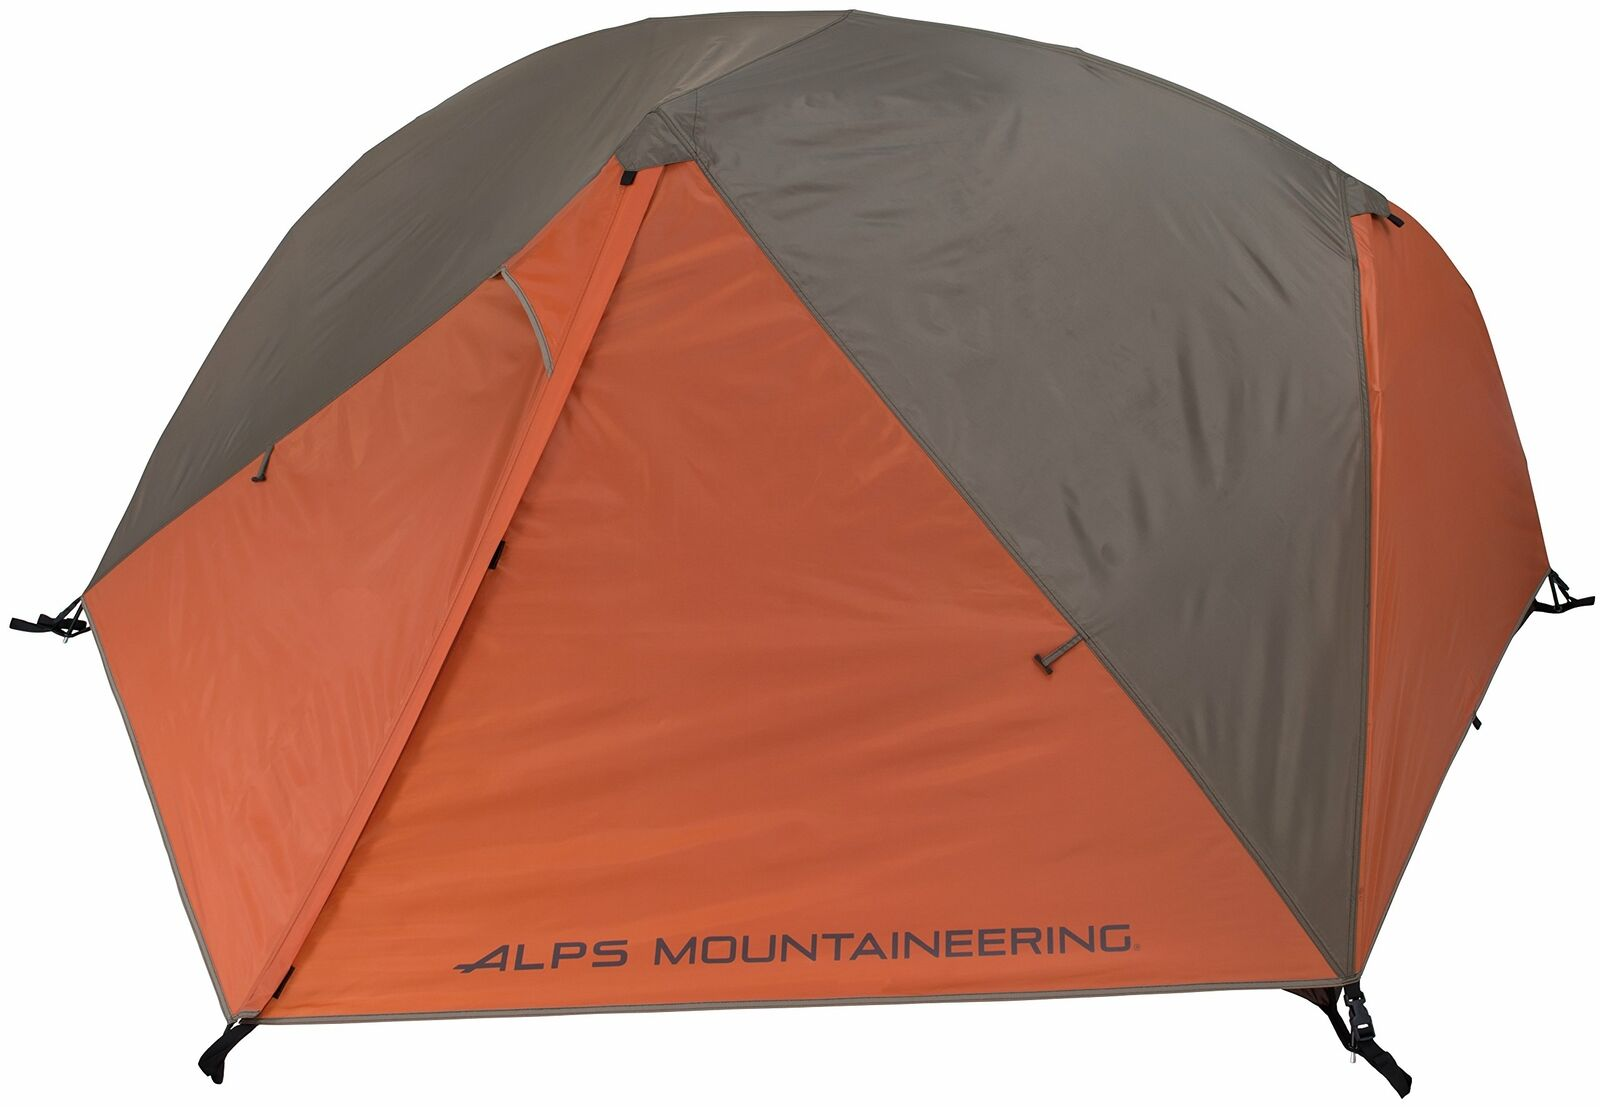 ALPS Mountaineering Chaos 2Person Tent